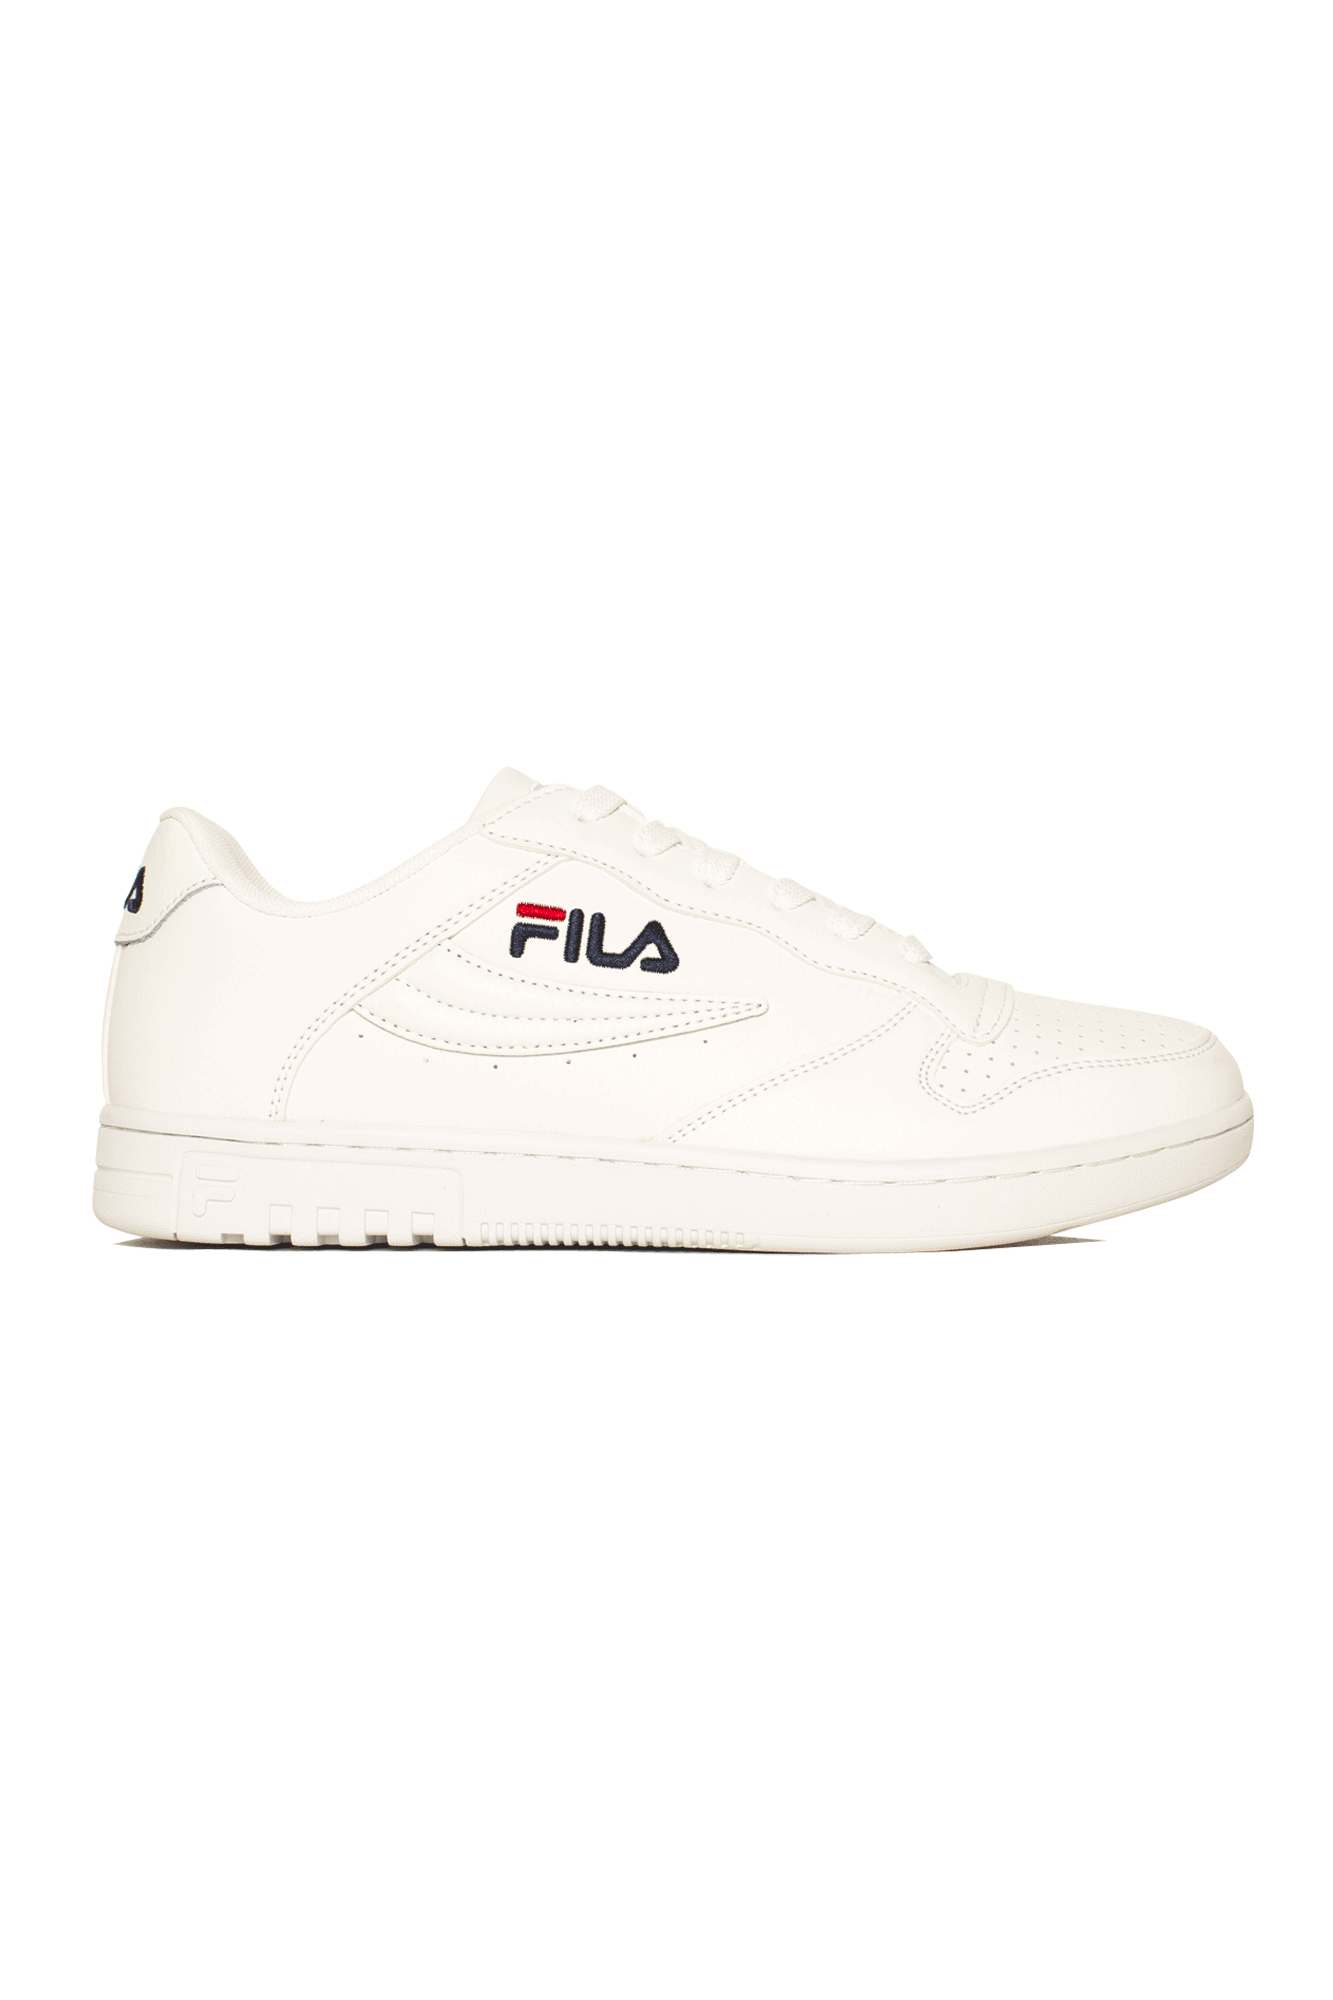 Fila Sneakers FX100 low White 1010260#000#1FG#8 - One Block Down